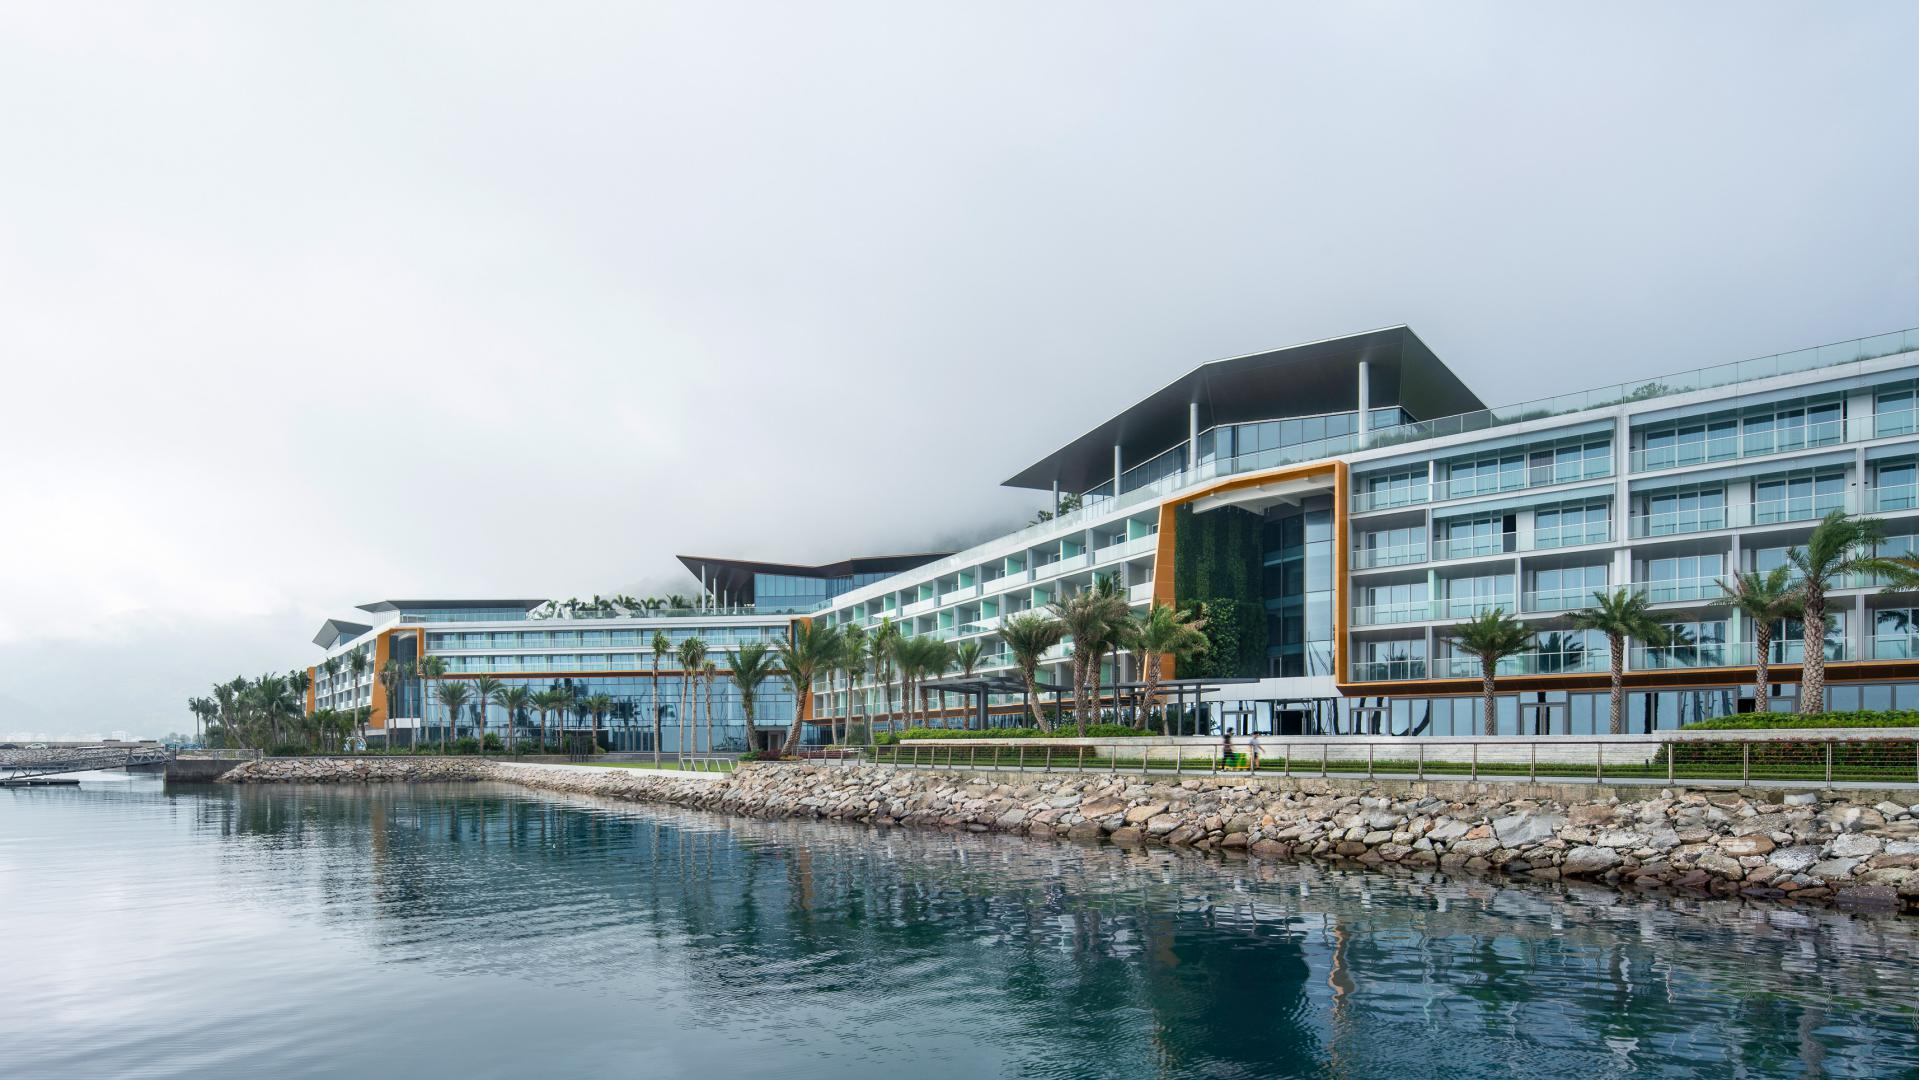 Longcheer Yacht Club in China was designed by SAOTA, an architecture practice established in South Africa.